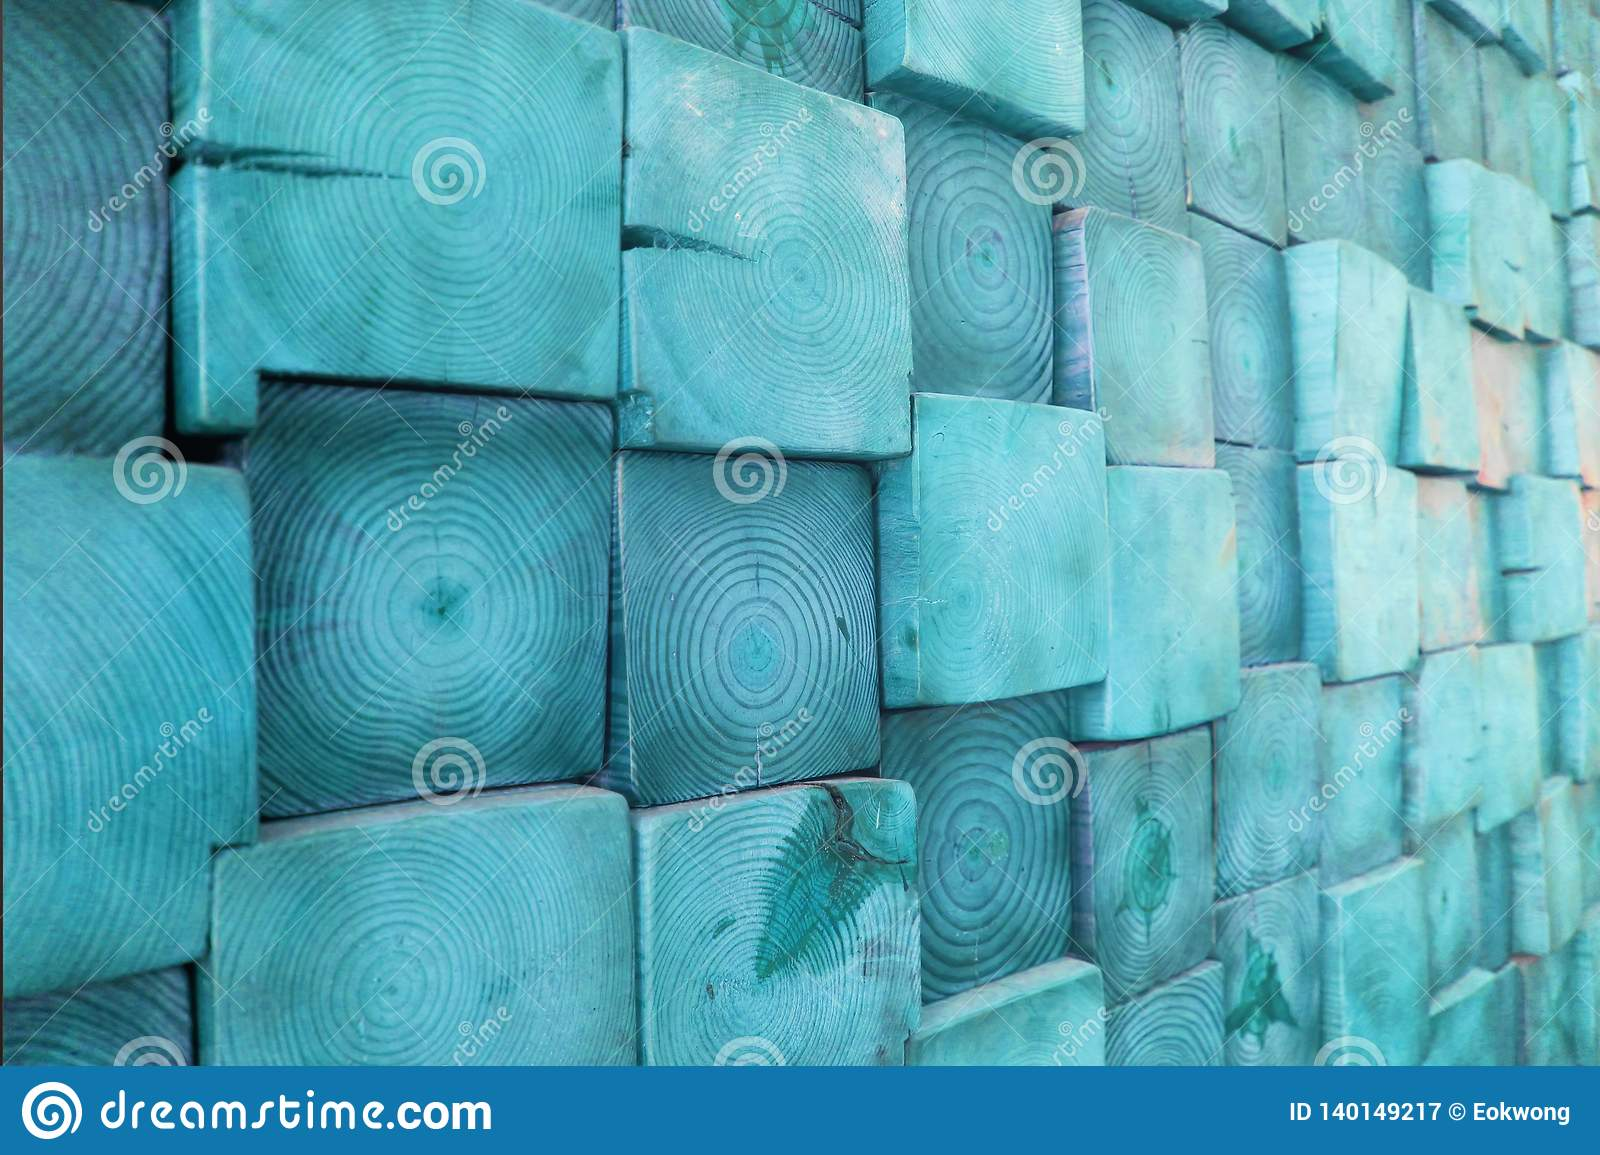 Blue Stained Wood Block Wall, Showing Wood Grain and Cracks - Rustic Home Decor